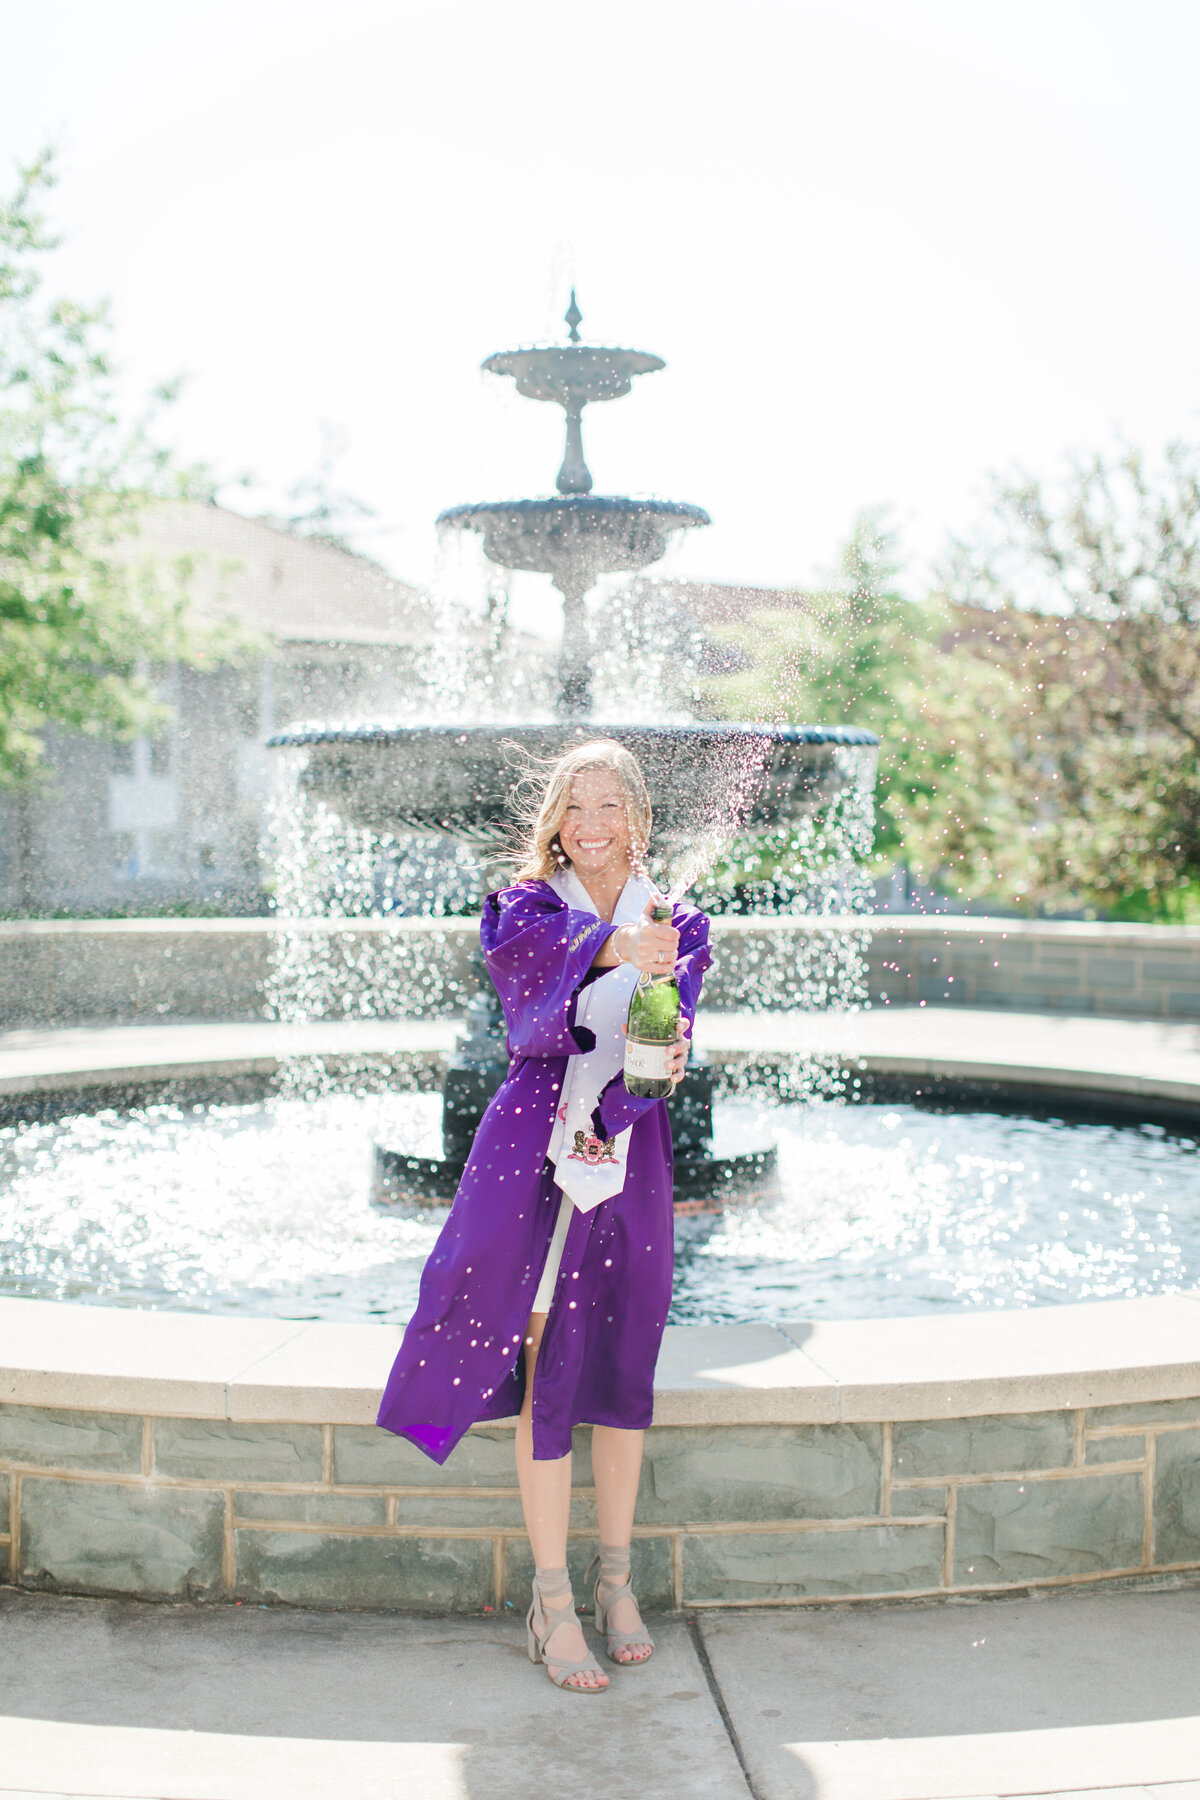 Brooke_Gore_JMU_Senior_Graduation_Session_2020_Angelika_Johns_Photography-2631